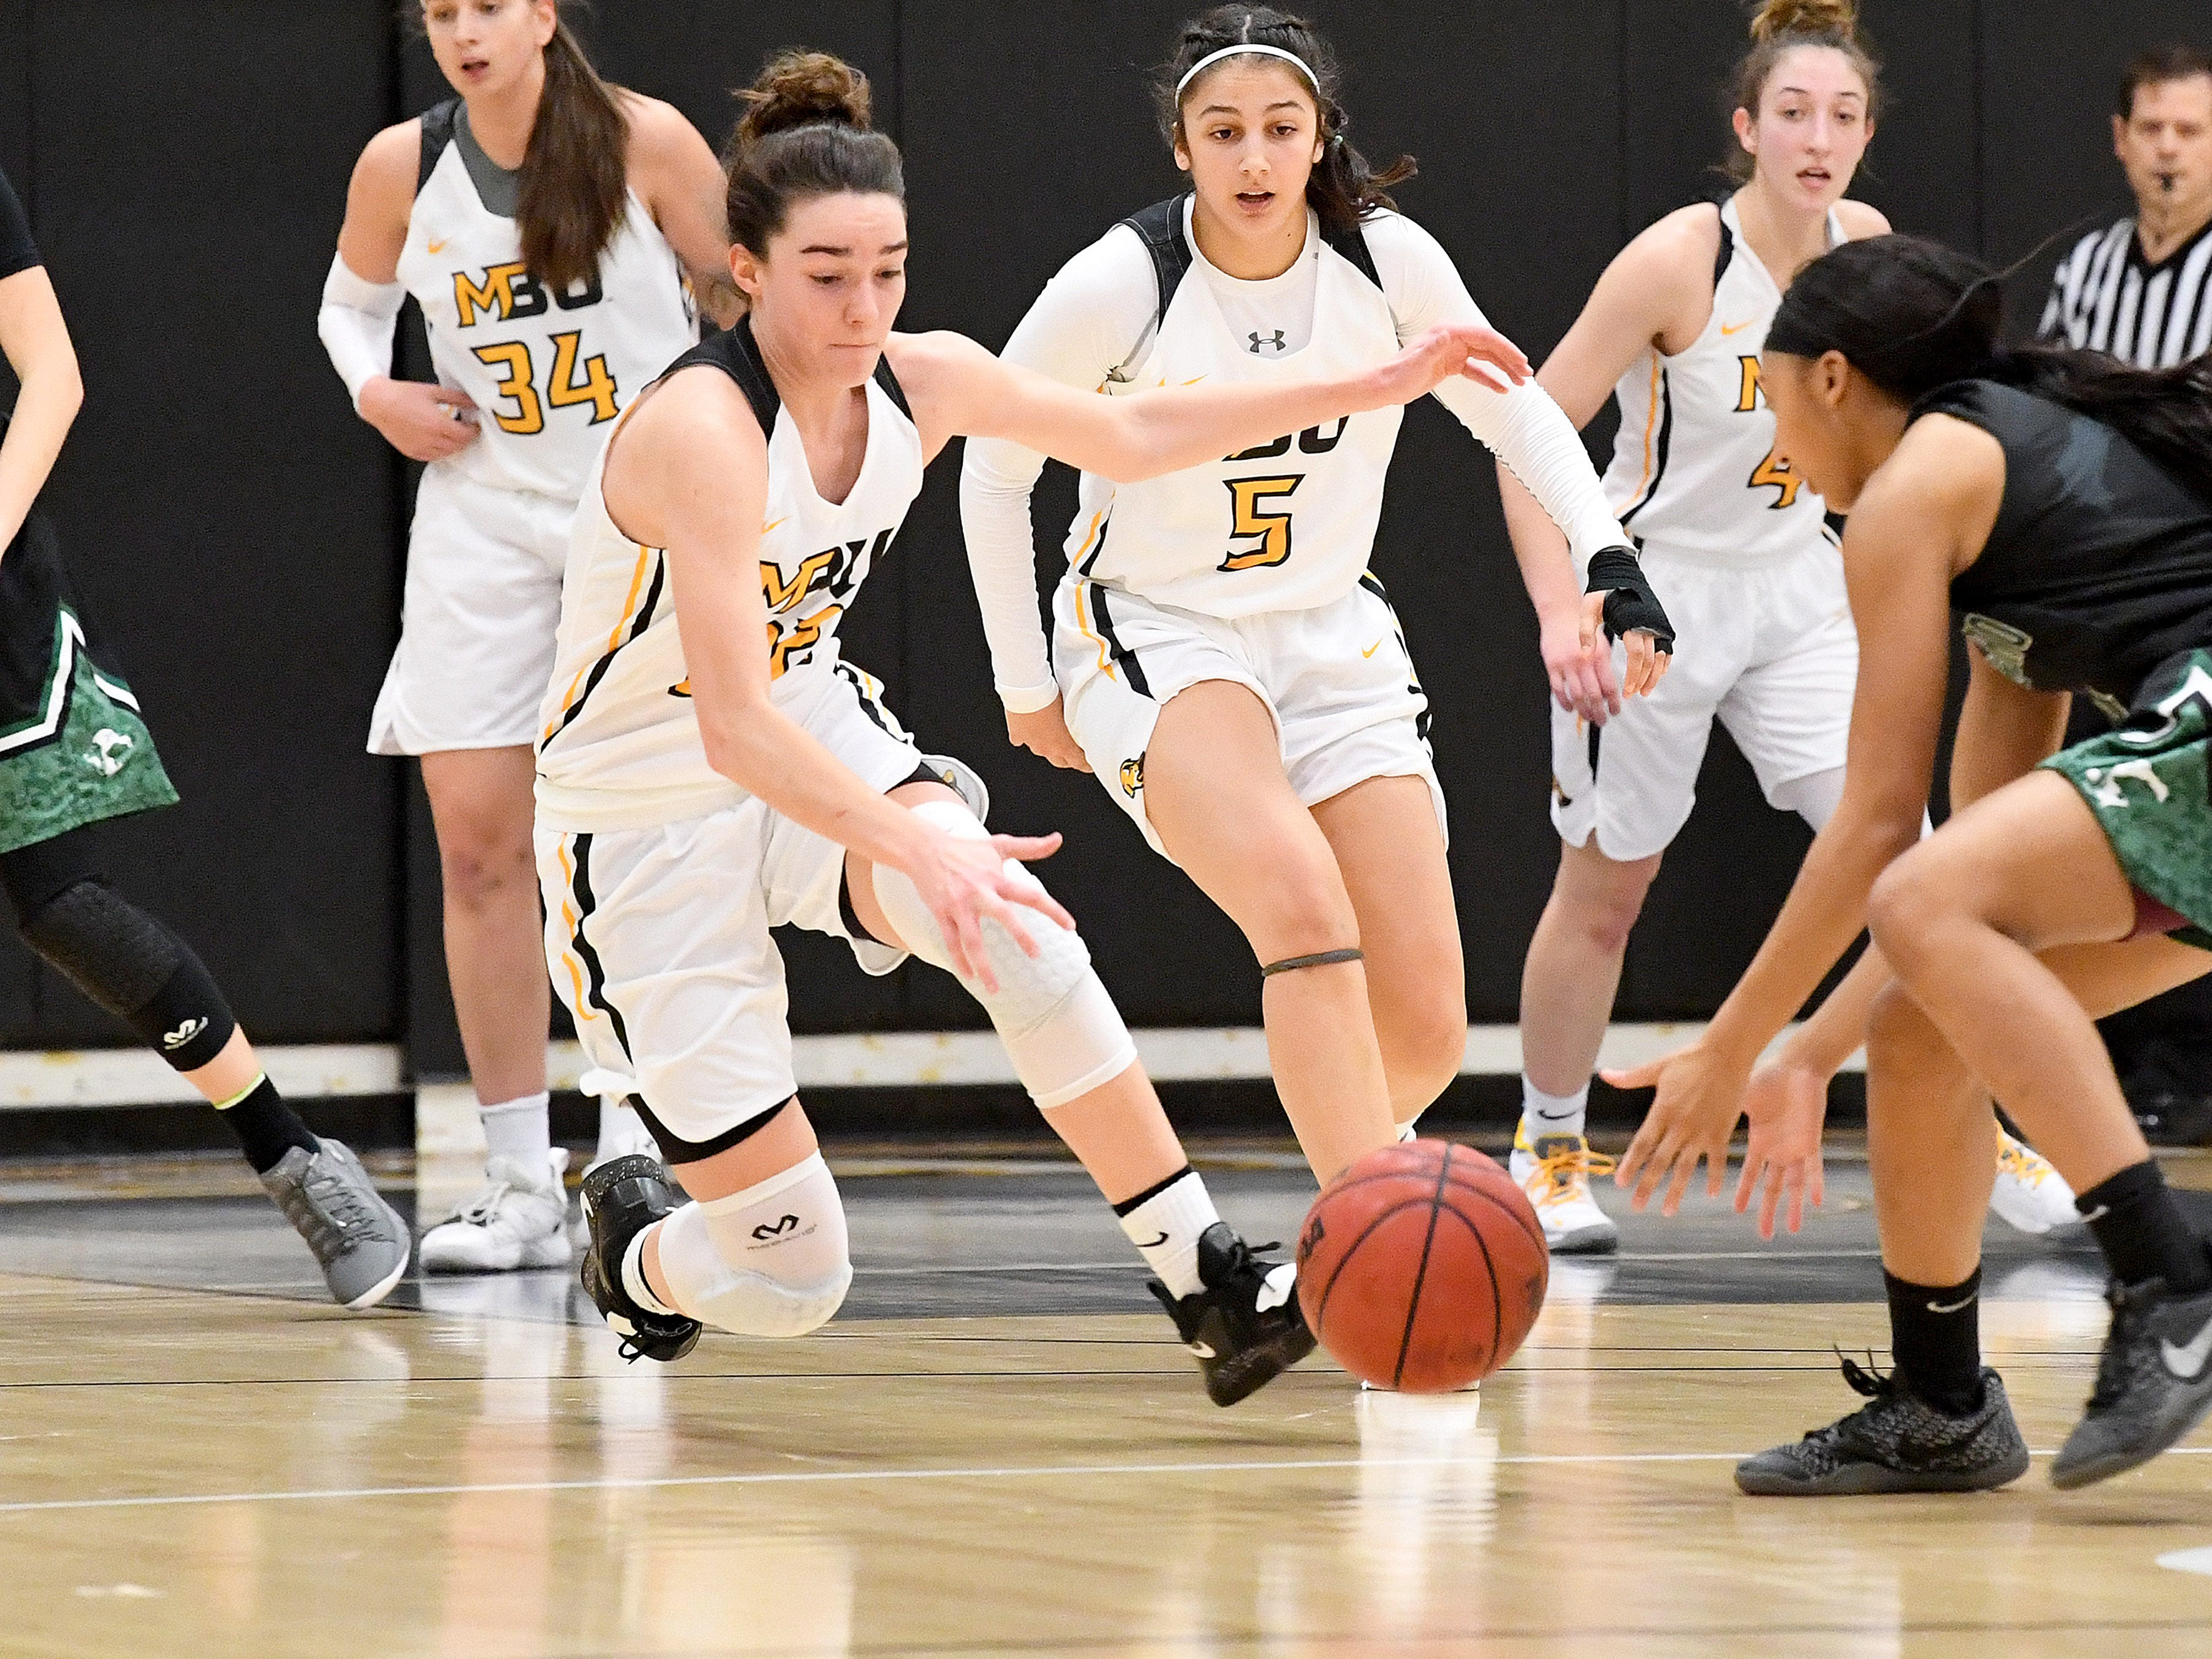 Mary Baldwin's Leah Calhoun (#22) begins to slide down to capture a loose ball with teammate Demet Saygili (#5) just behind her during a USA South conference game played in Staunton on Jan. 9, 2019.